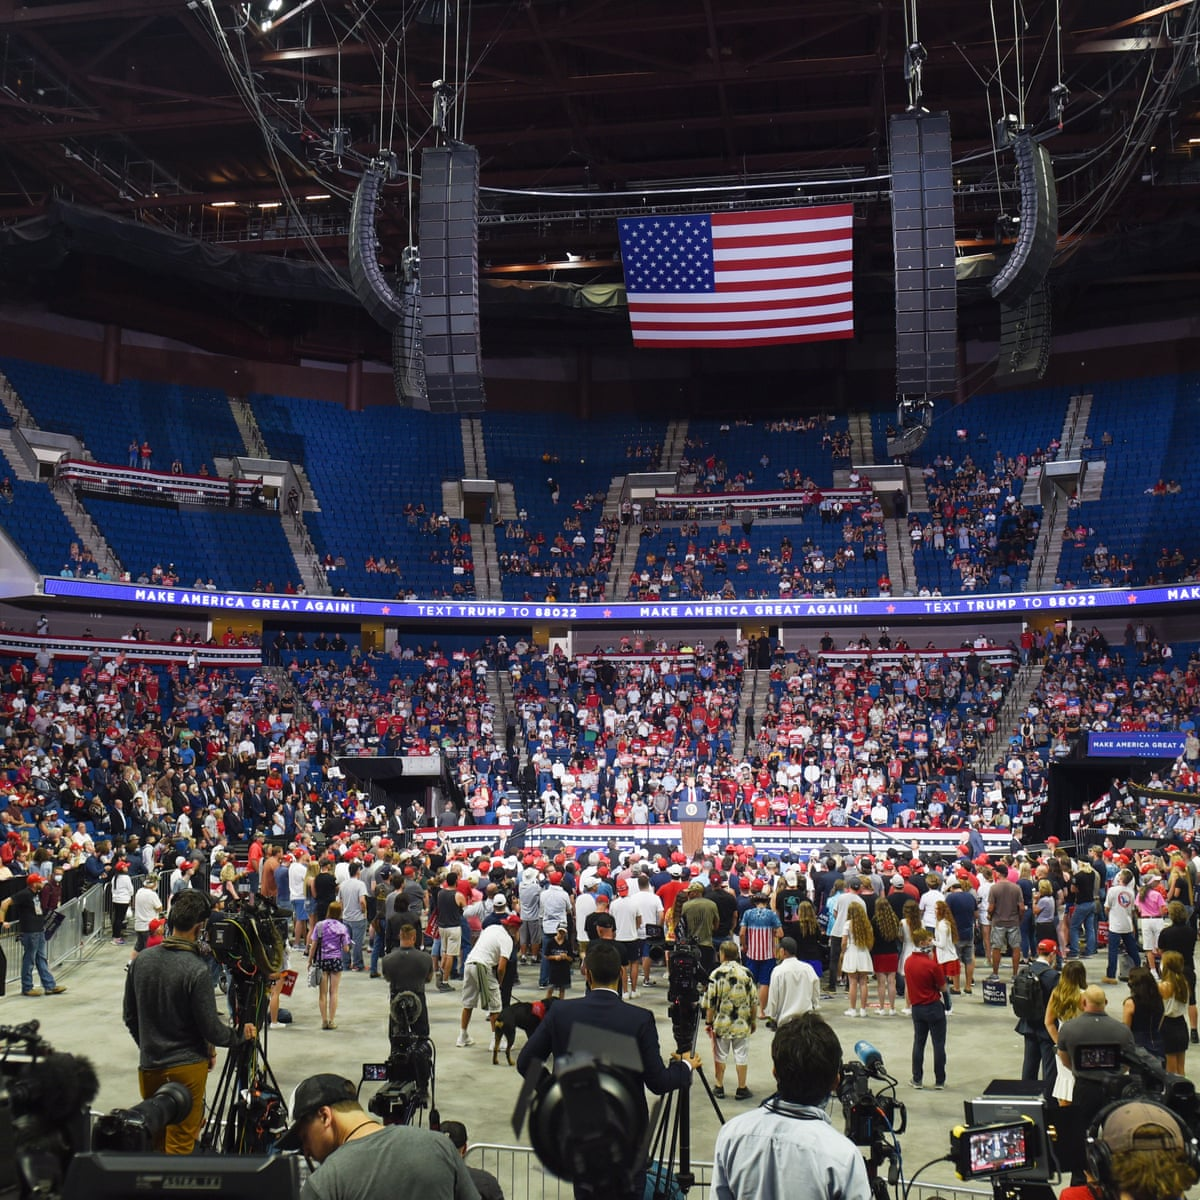 Donald Trump Sows Division And Promises Greatness At Tulsa Rally Flop Donald Trump The Guardian